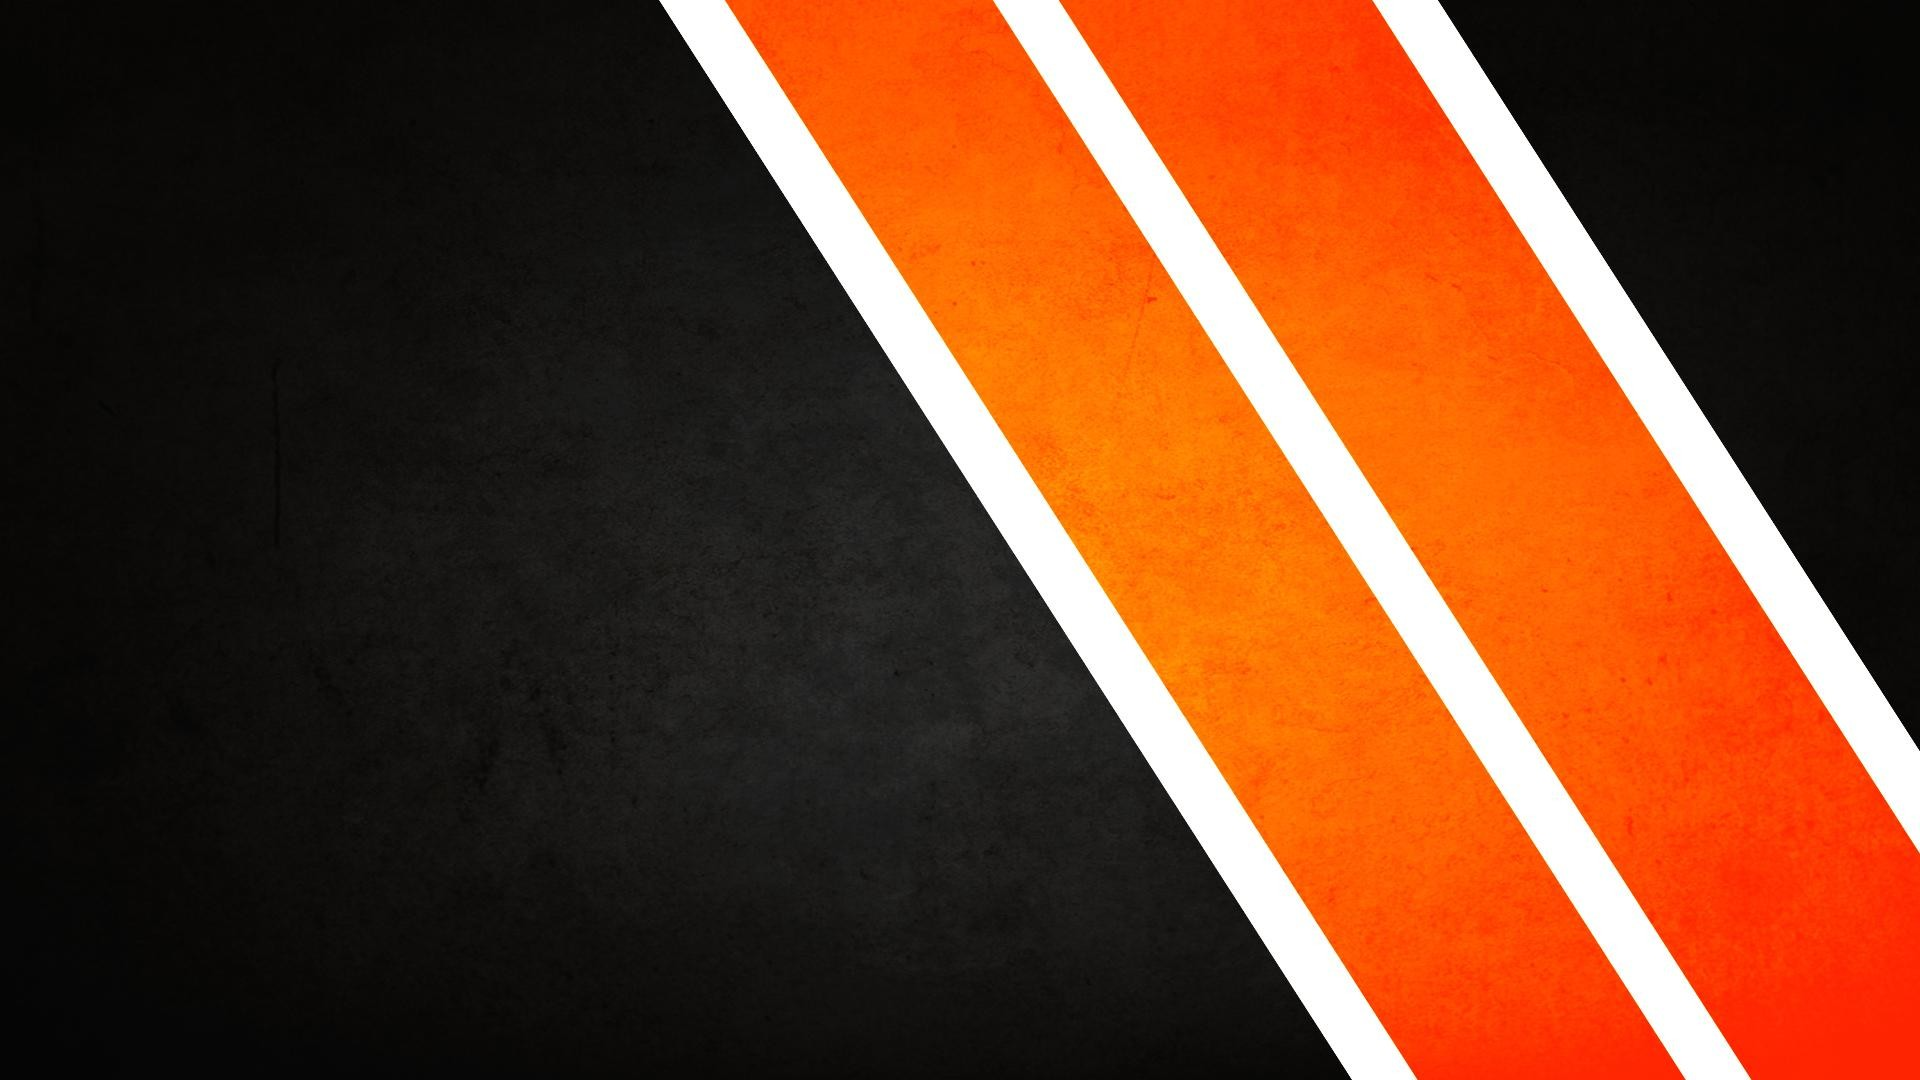 cool orange and black backgrounds